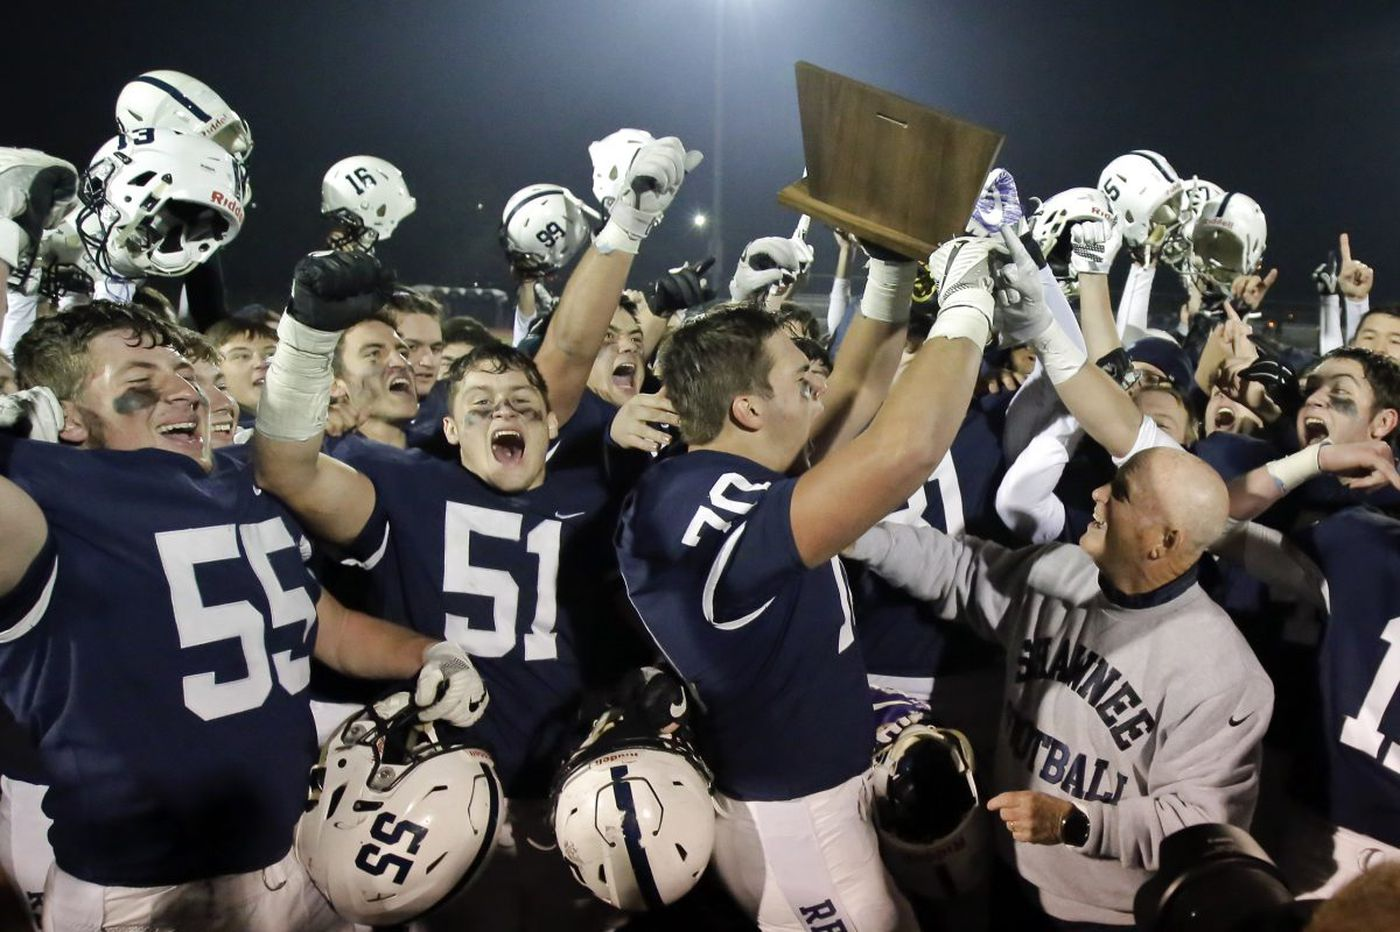 NJSIAA approves major changes to football format